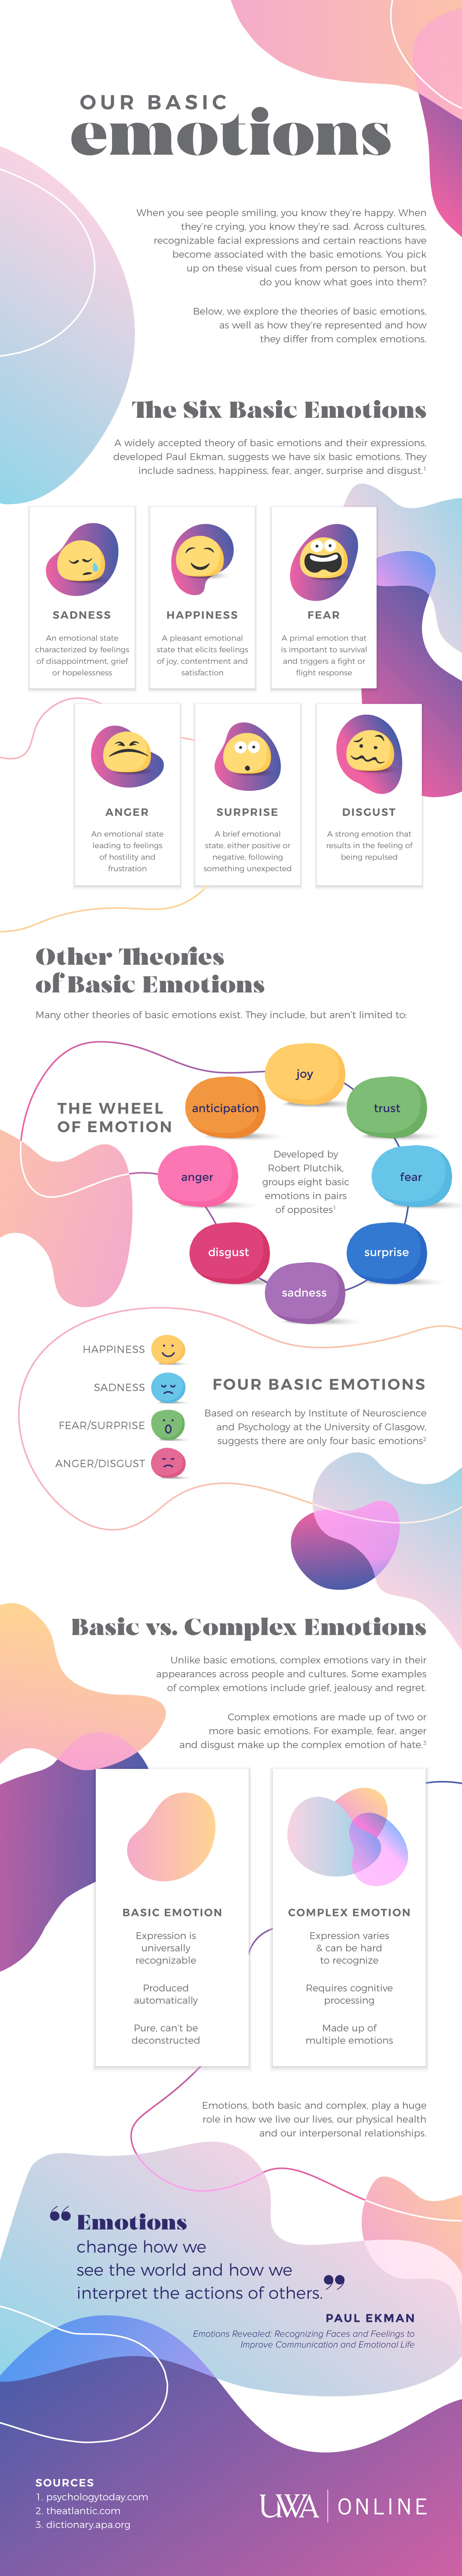 Illustrated infographic explains the basic emotions experienced by humans.